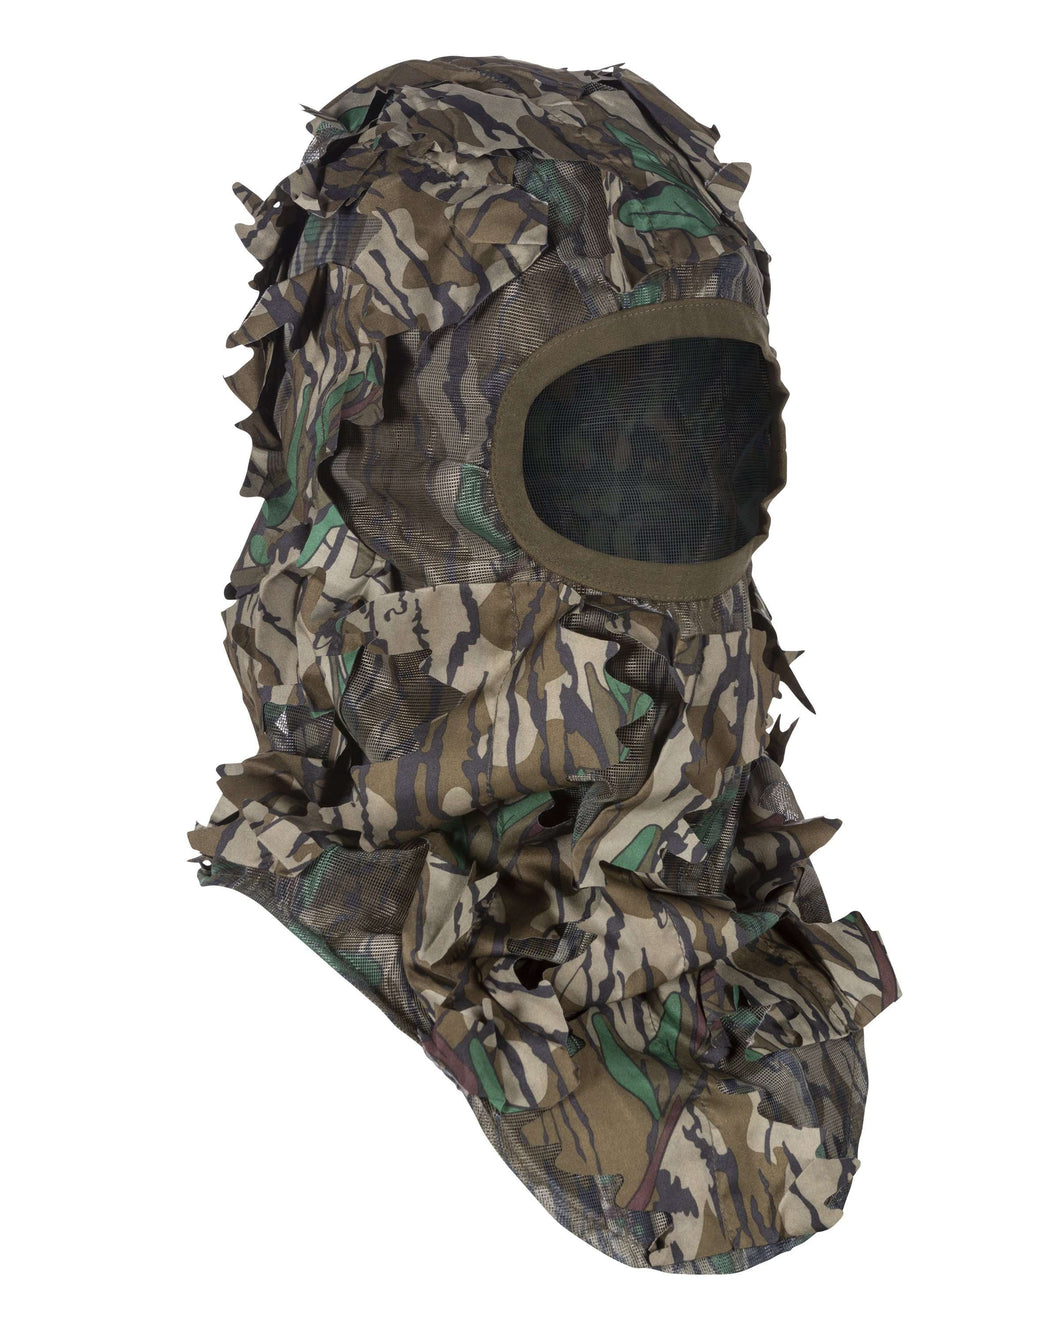 Mossy Oak Greenleaf Leafy Face Mask